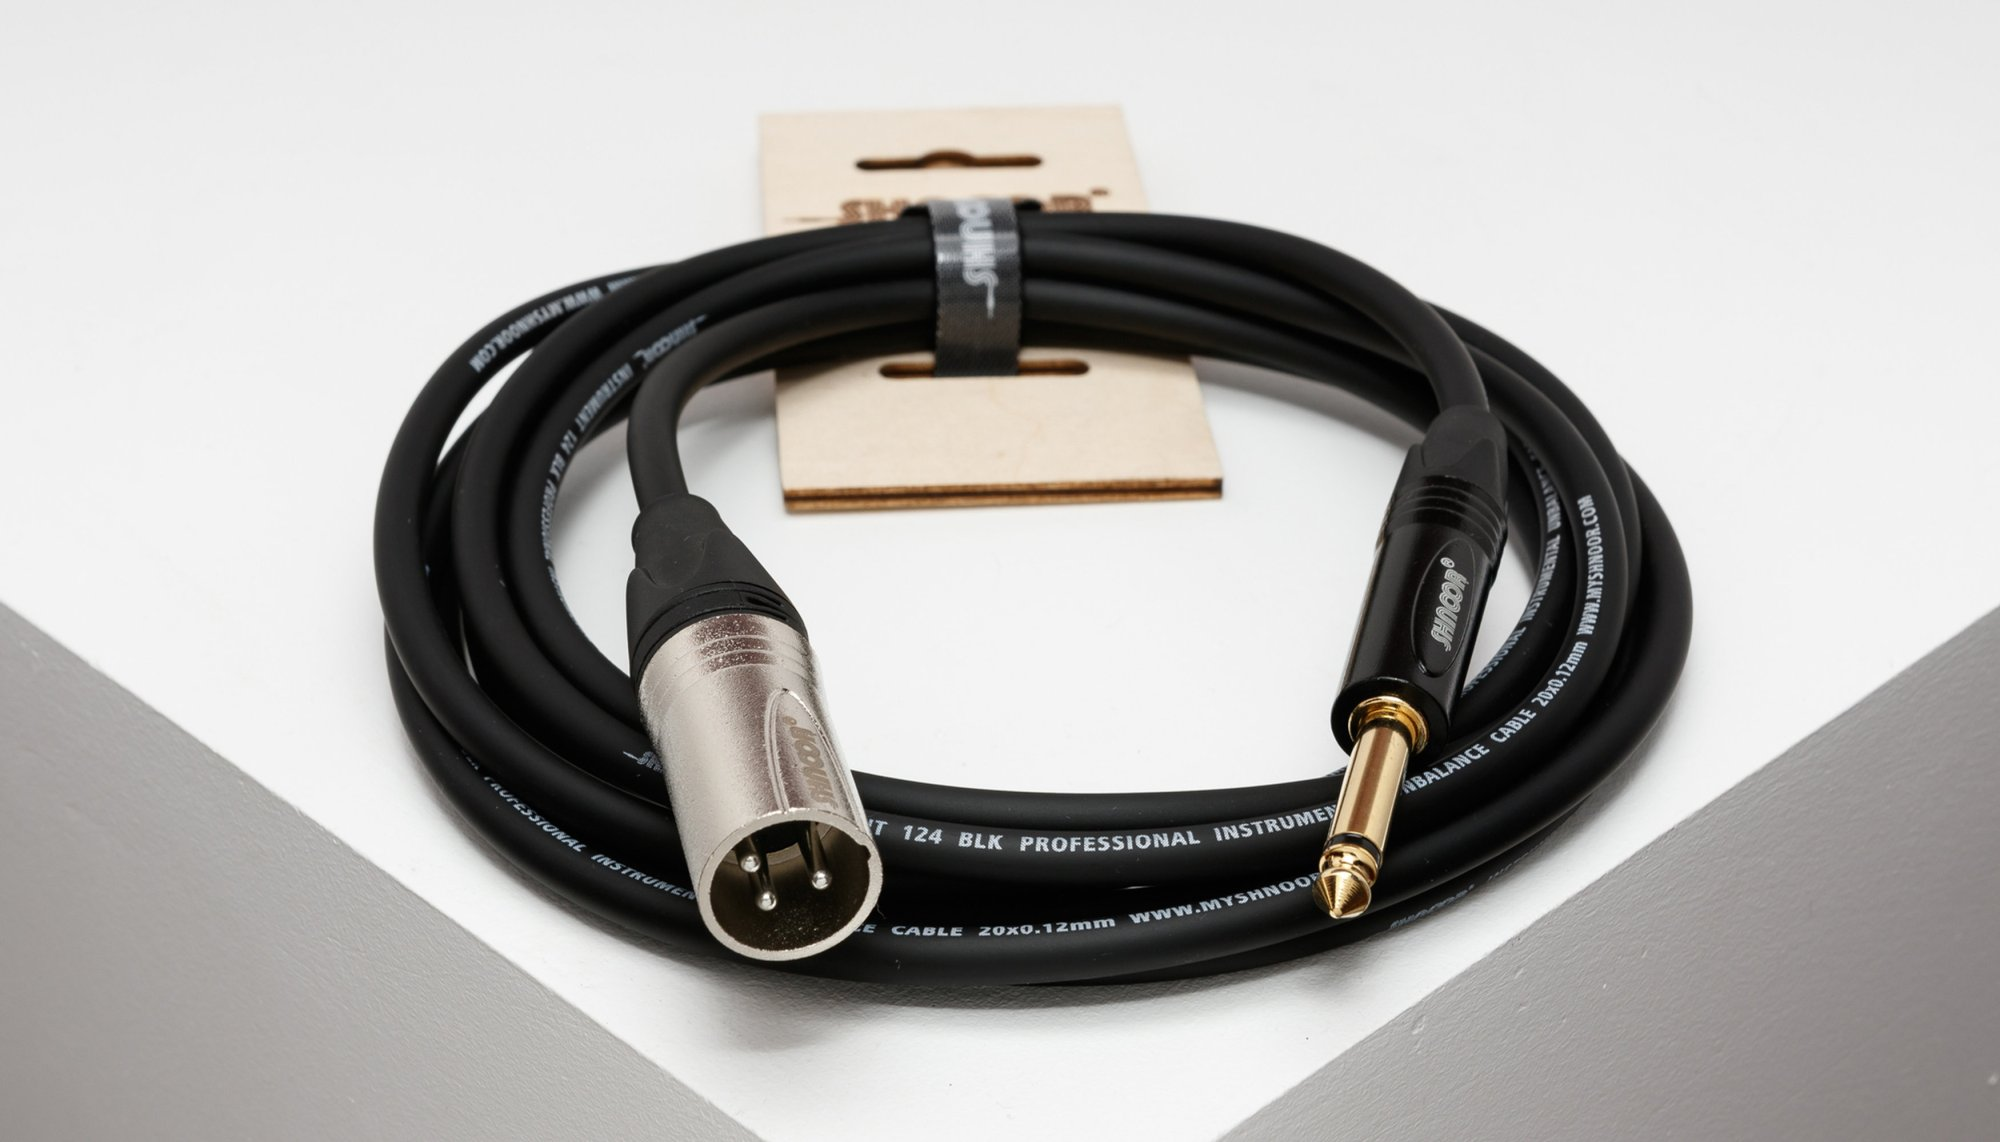 hight resolution of xmjm unbalanced cable with 3 pole xlr male and 6 3 mm 1 4 ts jack connectors myshnoor